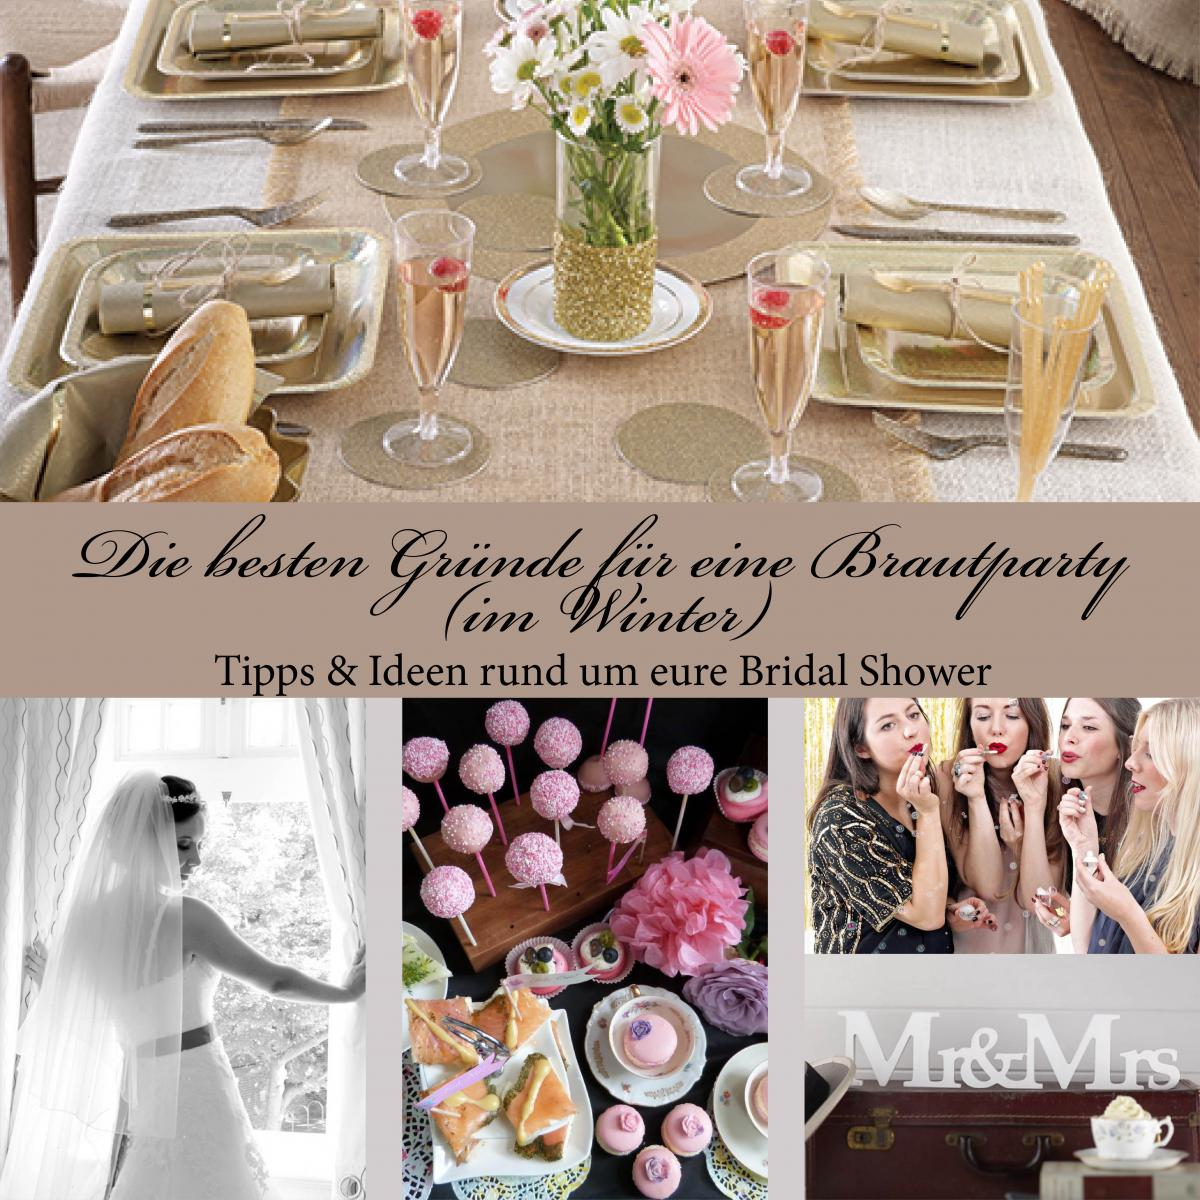 blog reihe planungswahn die zeit bis zur hochzeit nutzen teil 4 my bridal shower blog. Black Bedroom Furniture Sets. Home Design Ideas